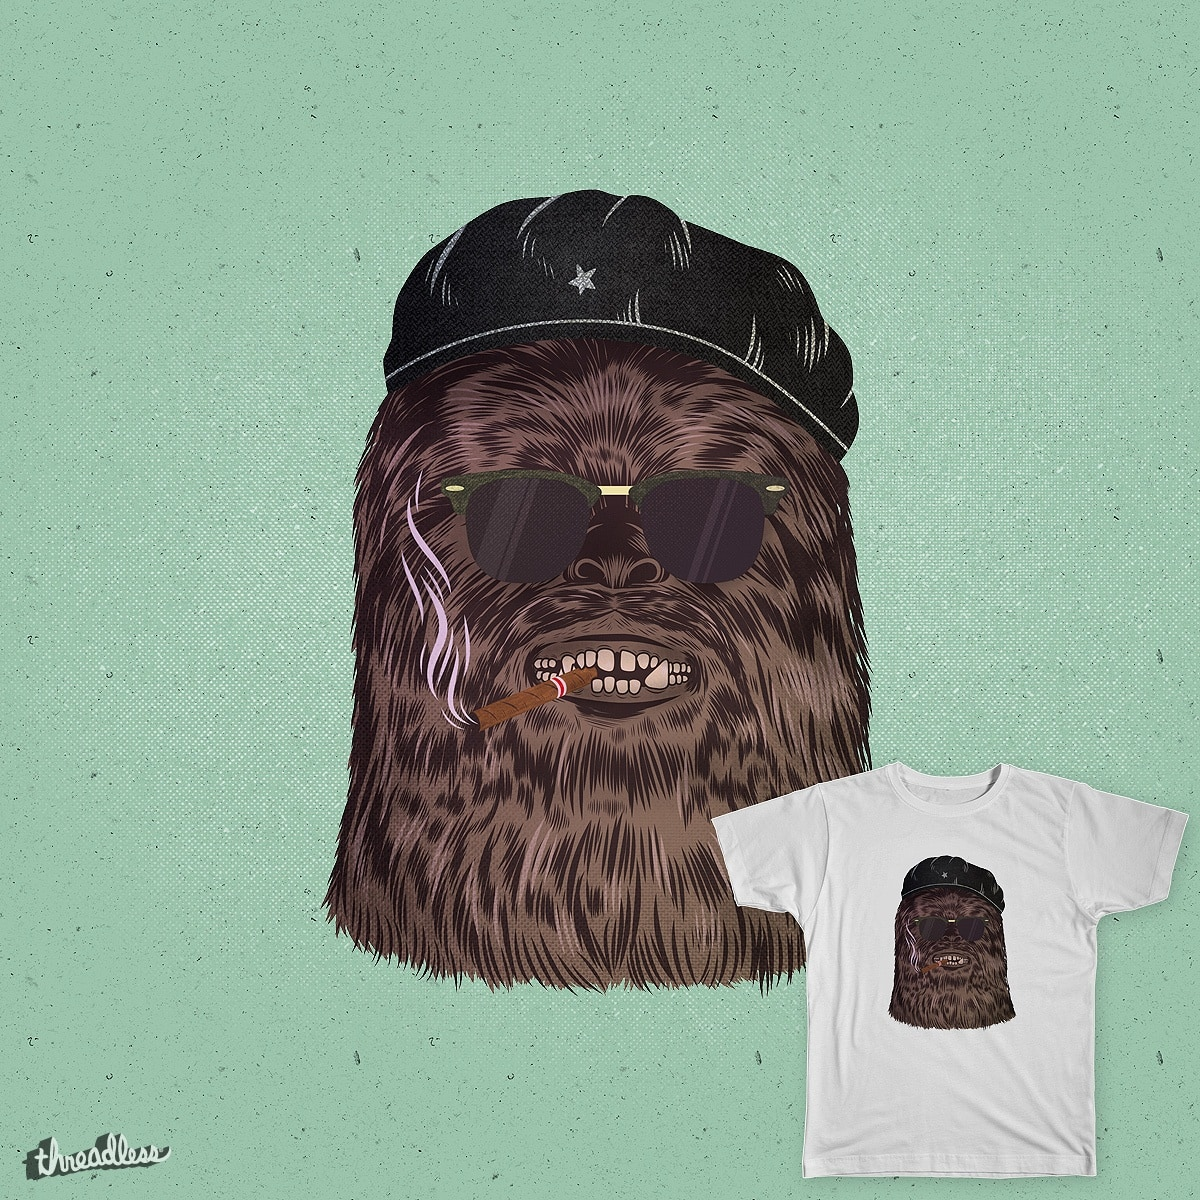 Chebacca by heymikel on Threadless